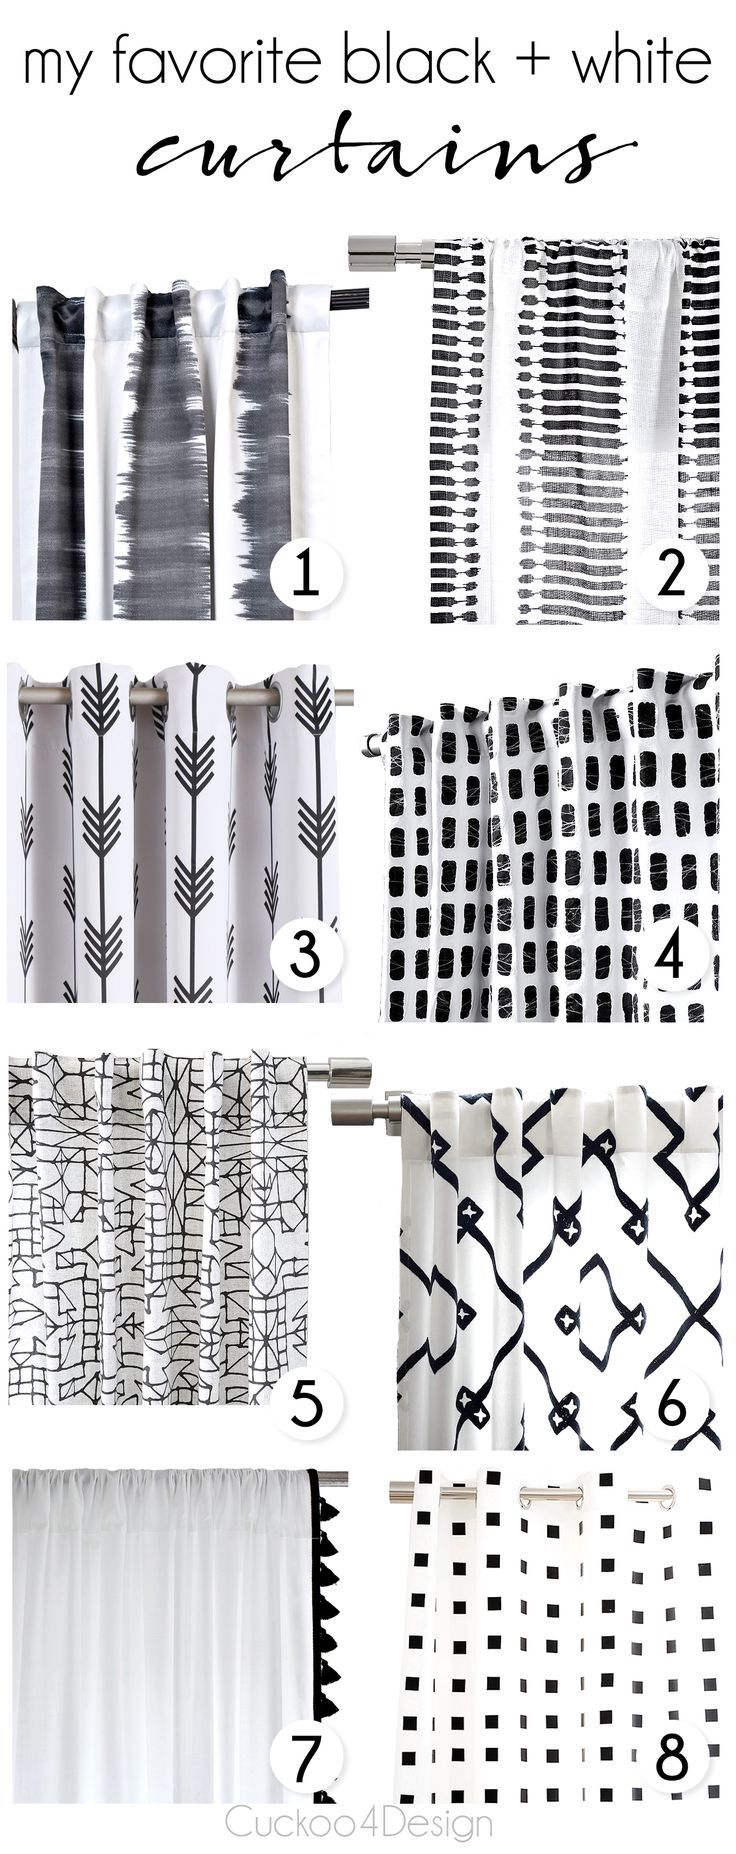 Exellent Black And White Curtains My Favorite Throughout Decor